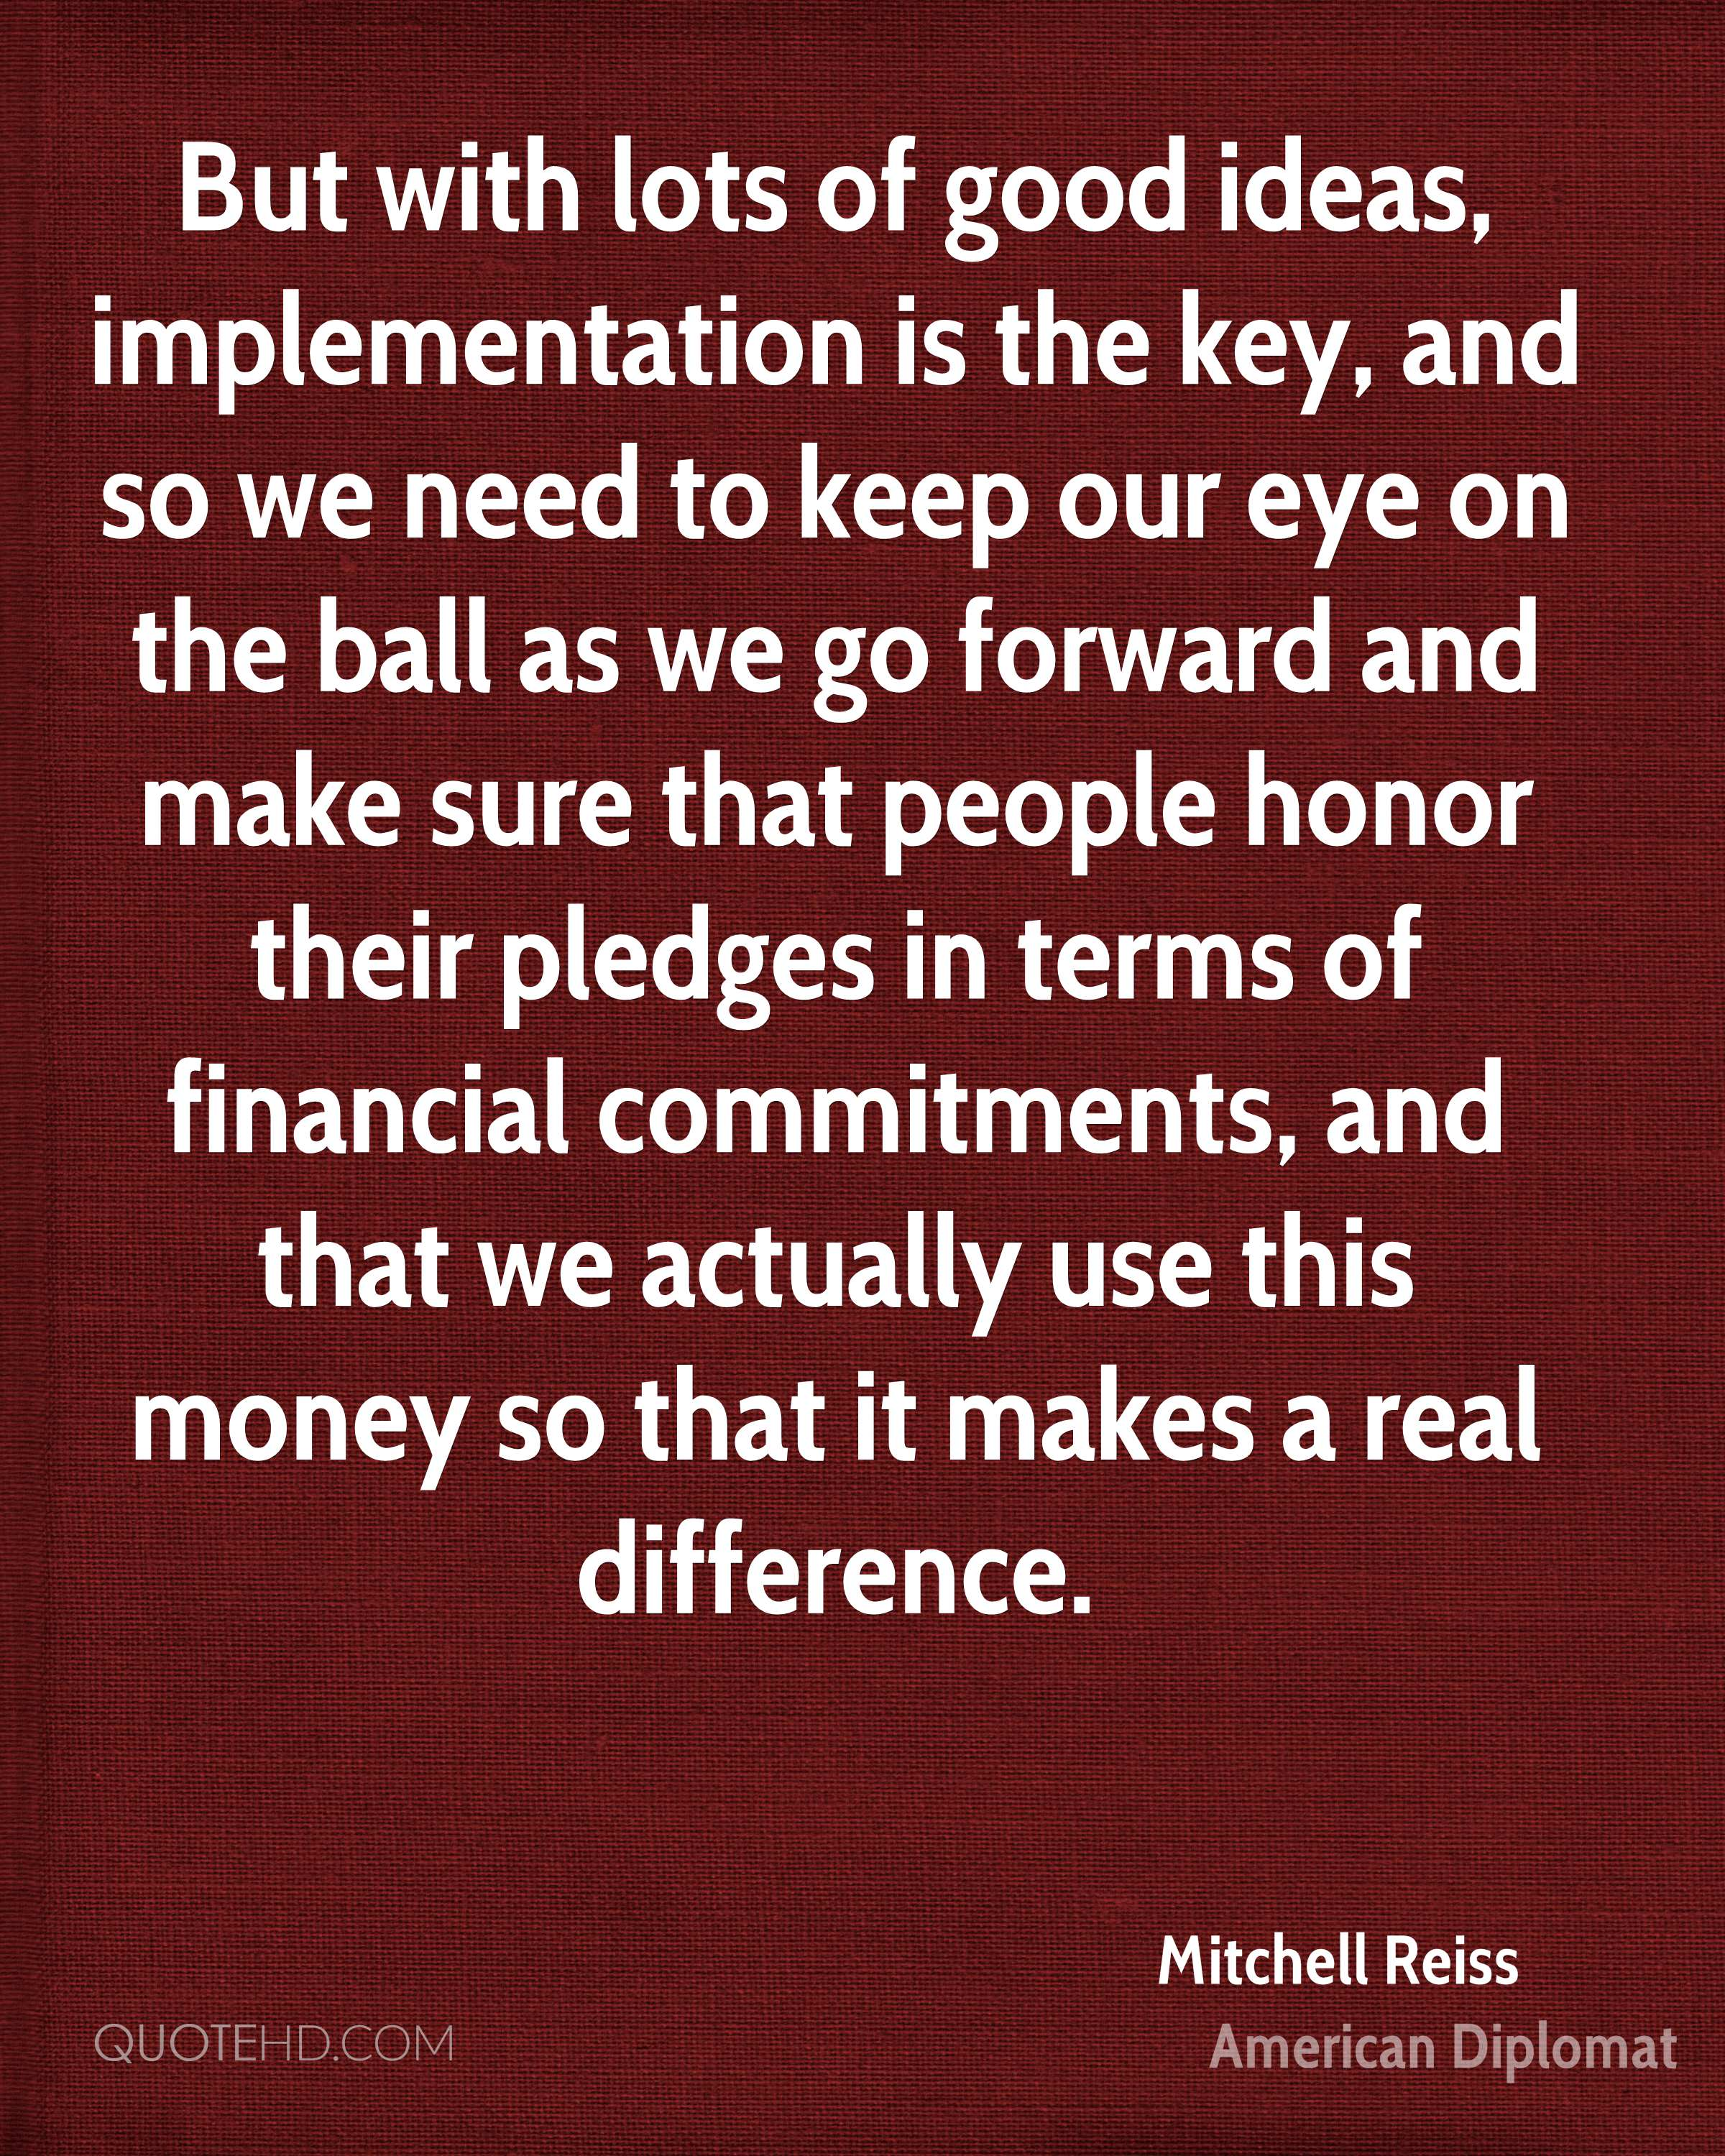 But with lots of good ideas, implementation is the key, and so we need to keep our eye on the ball as we go forward and make sure that people honor their pledges in terms of financial commitments, and that we actually use this money so that it makes a real difference.